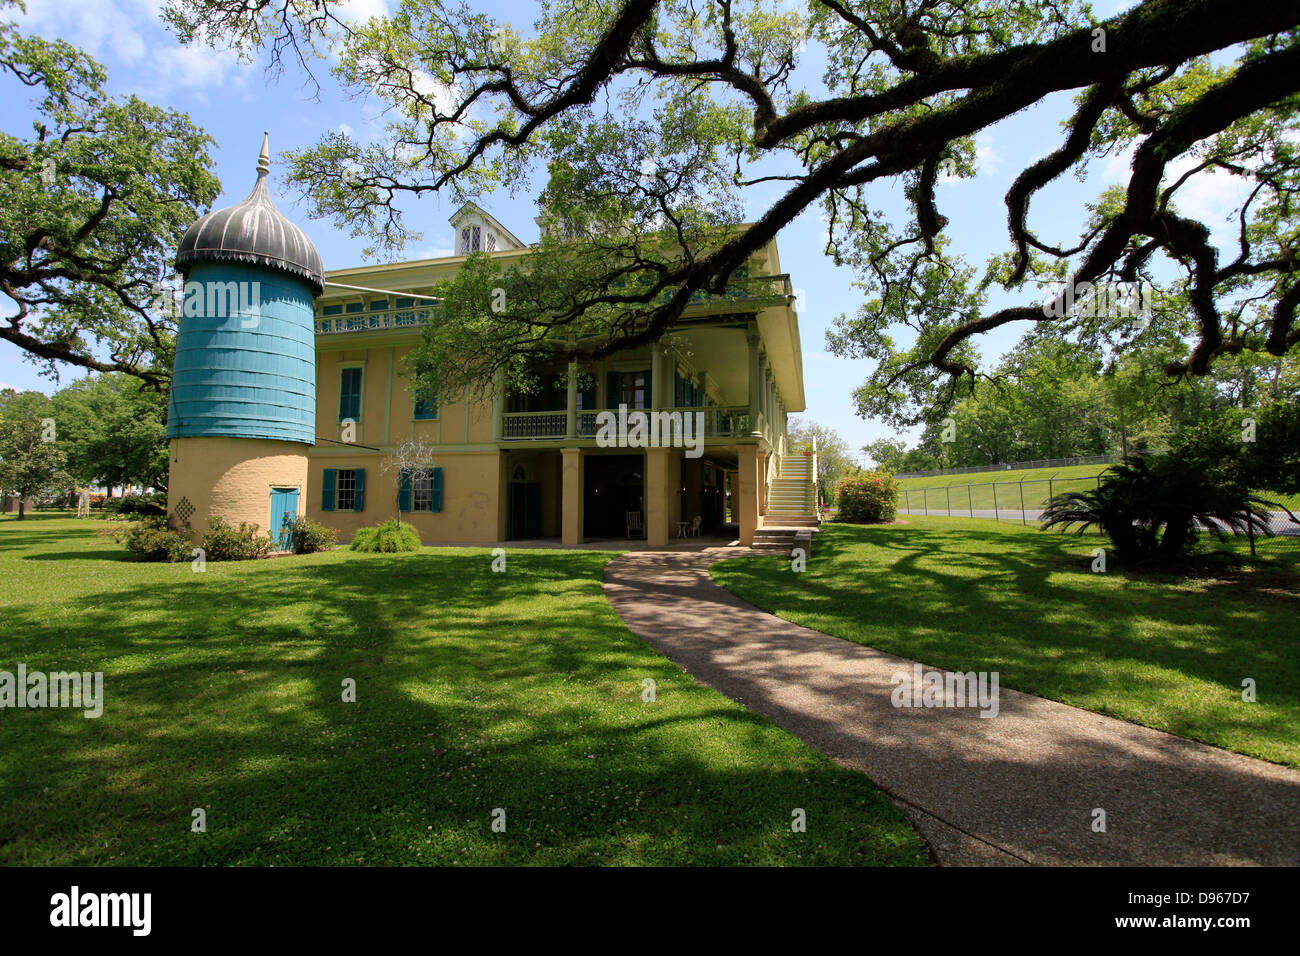 Plantation Owner House on governors house, indians house, mills house, plantation style house, colonists house, plantation masters house, country plantation house, plants house, french plantation house, planters house,